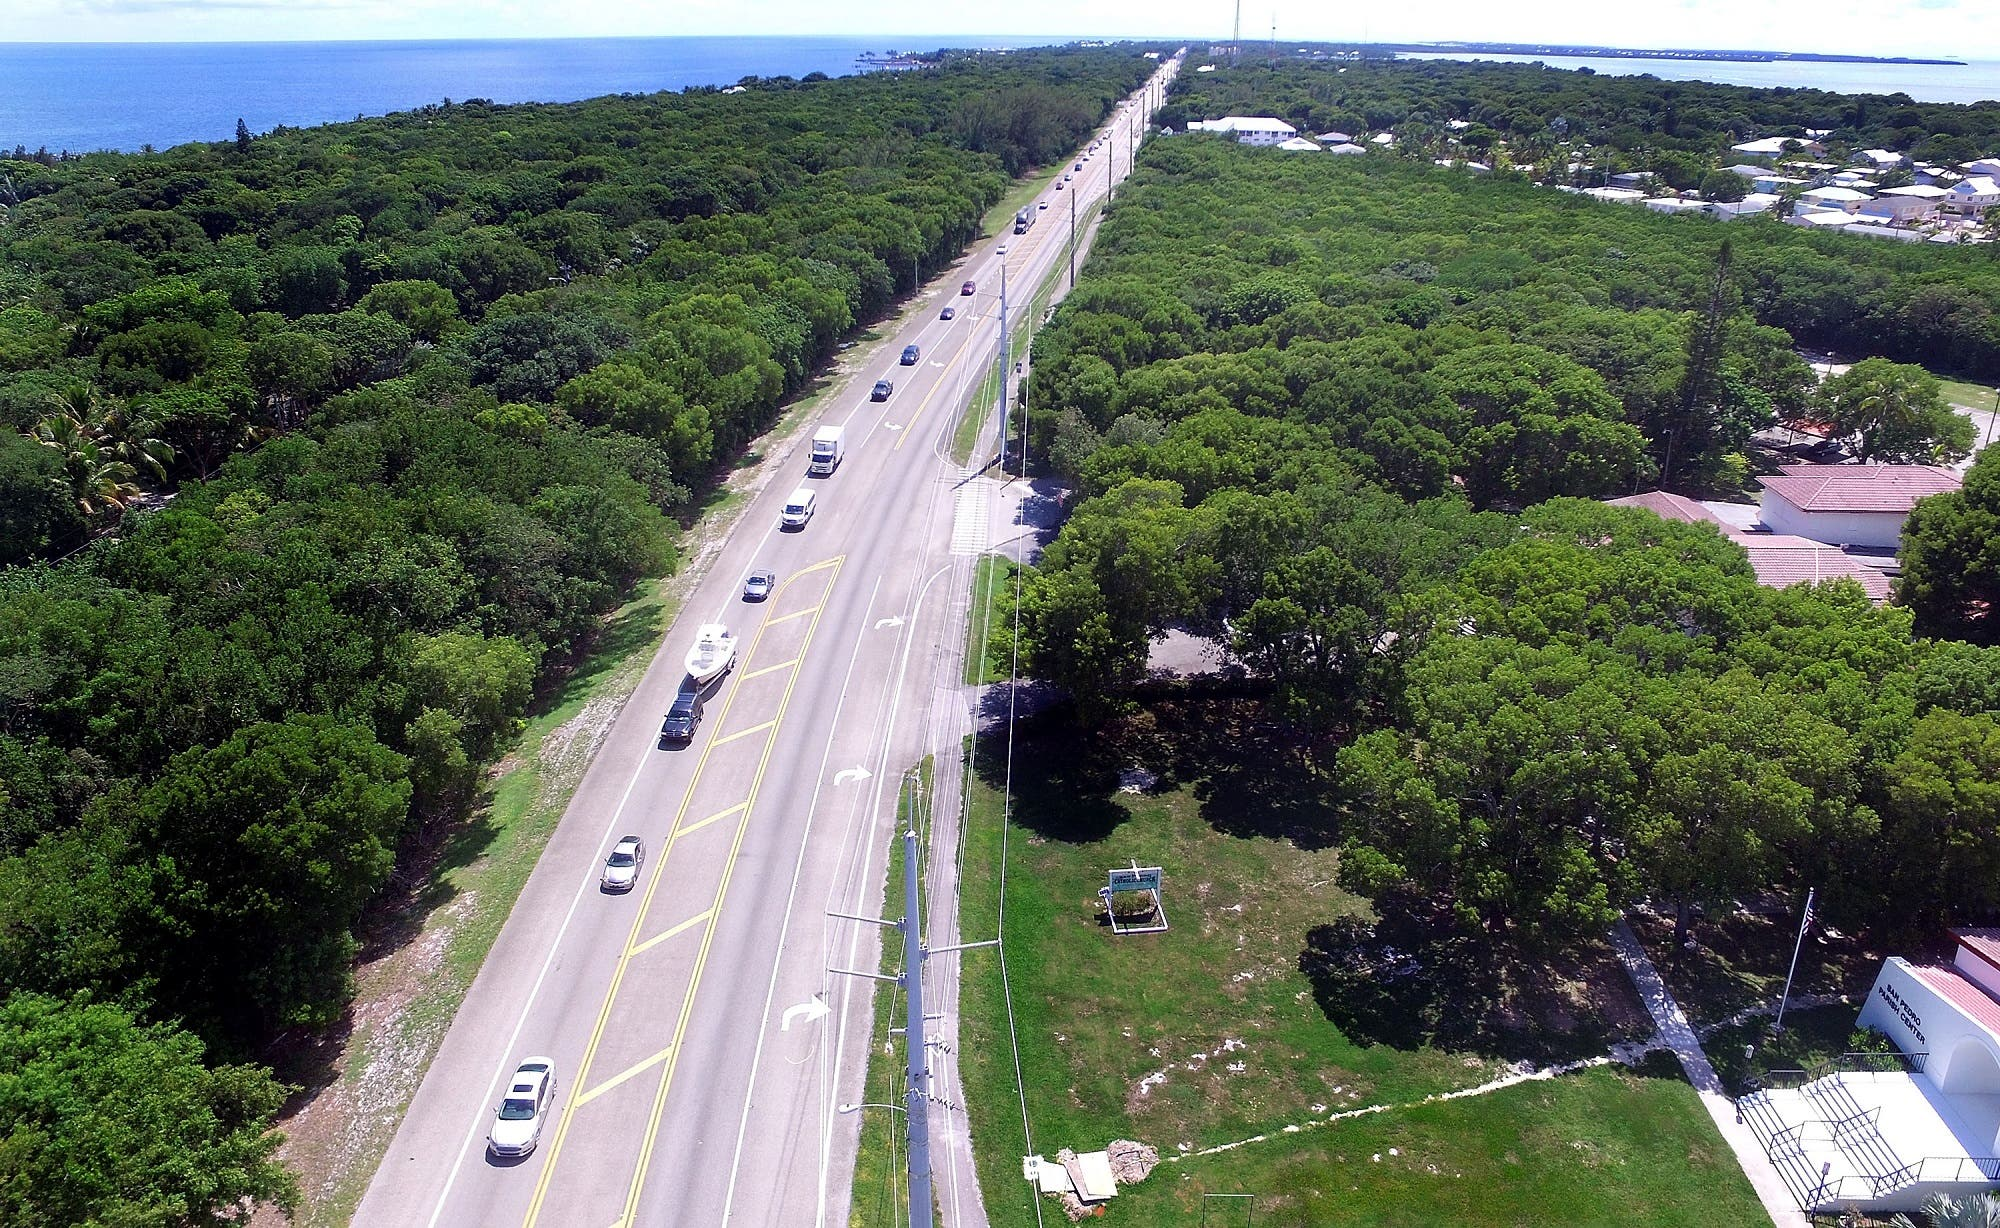 A steady stream of traffic heads North on Overseas Highway as Madetory evacuations continue in Monroe County and the Florida Keys on September 6, 2017. (AFP)